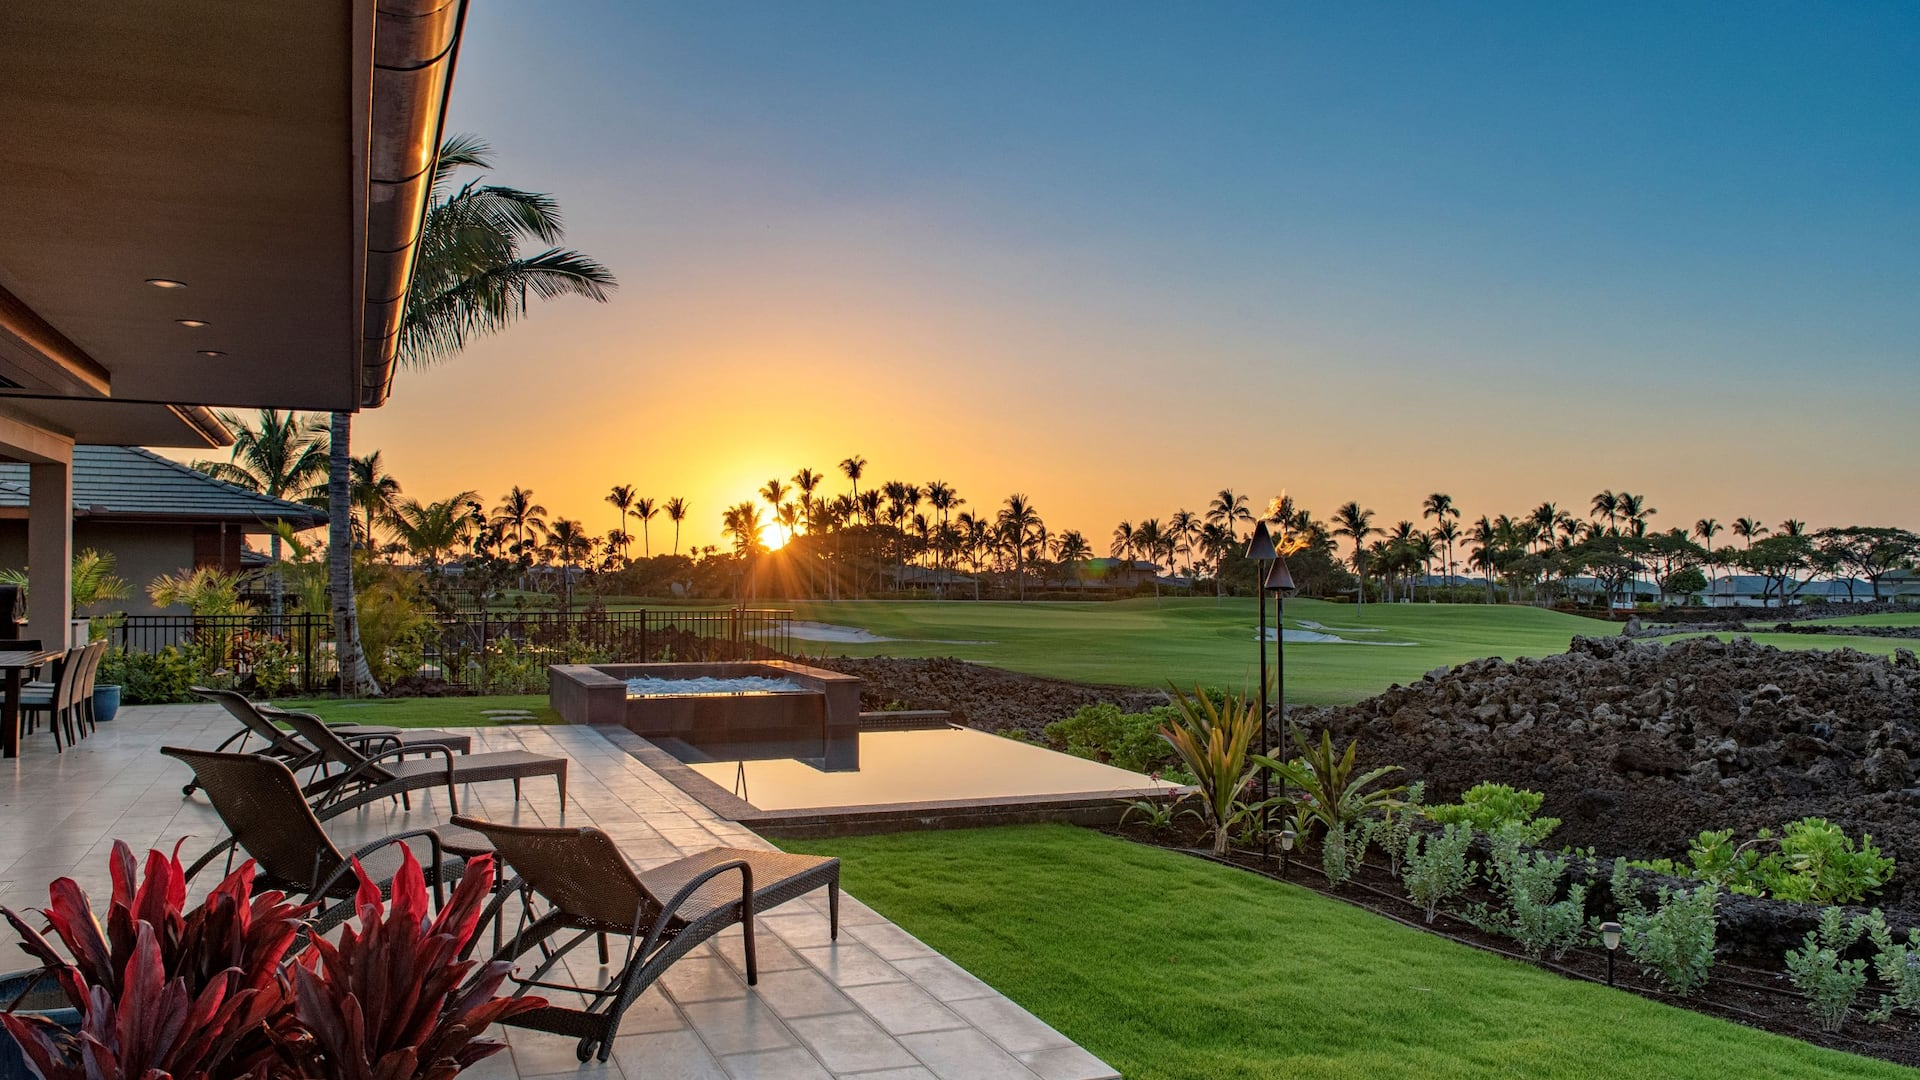 Destination-Residences-Hawaii-Laulea-P004-Patio-Sunset